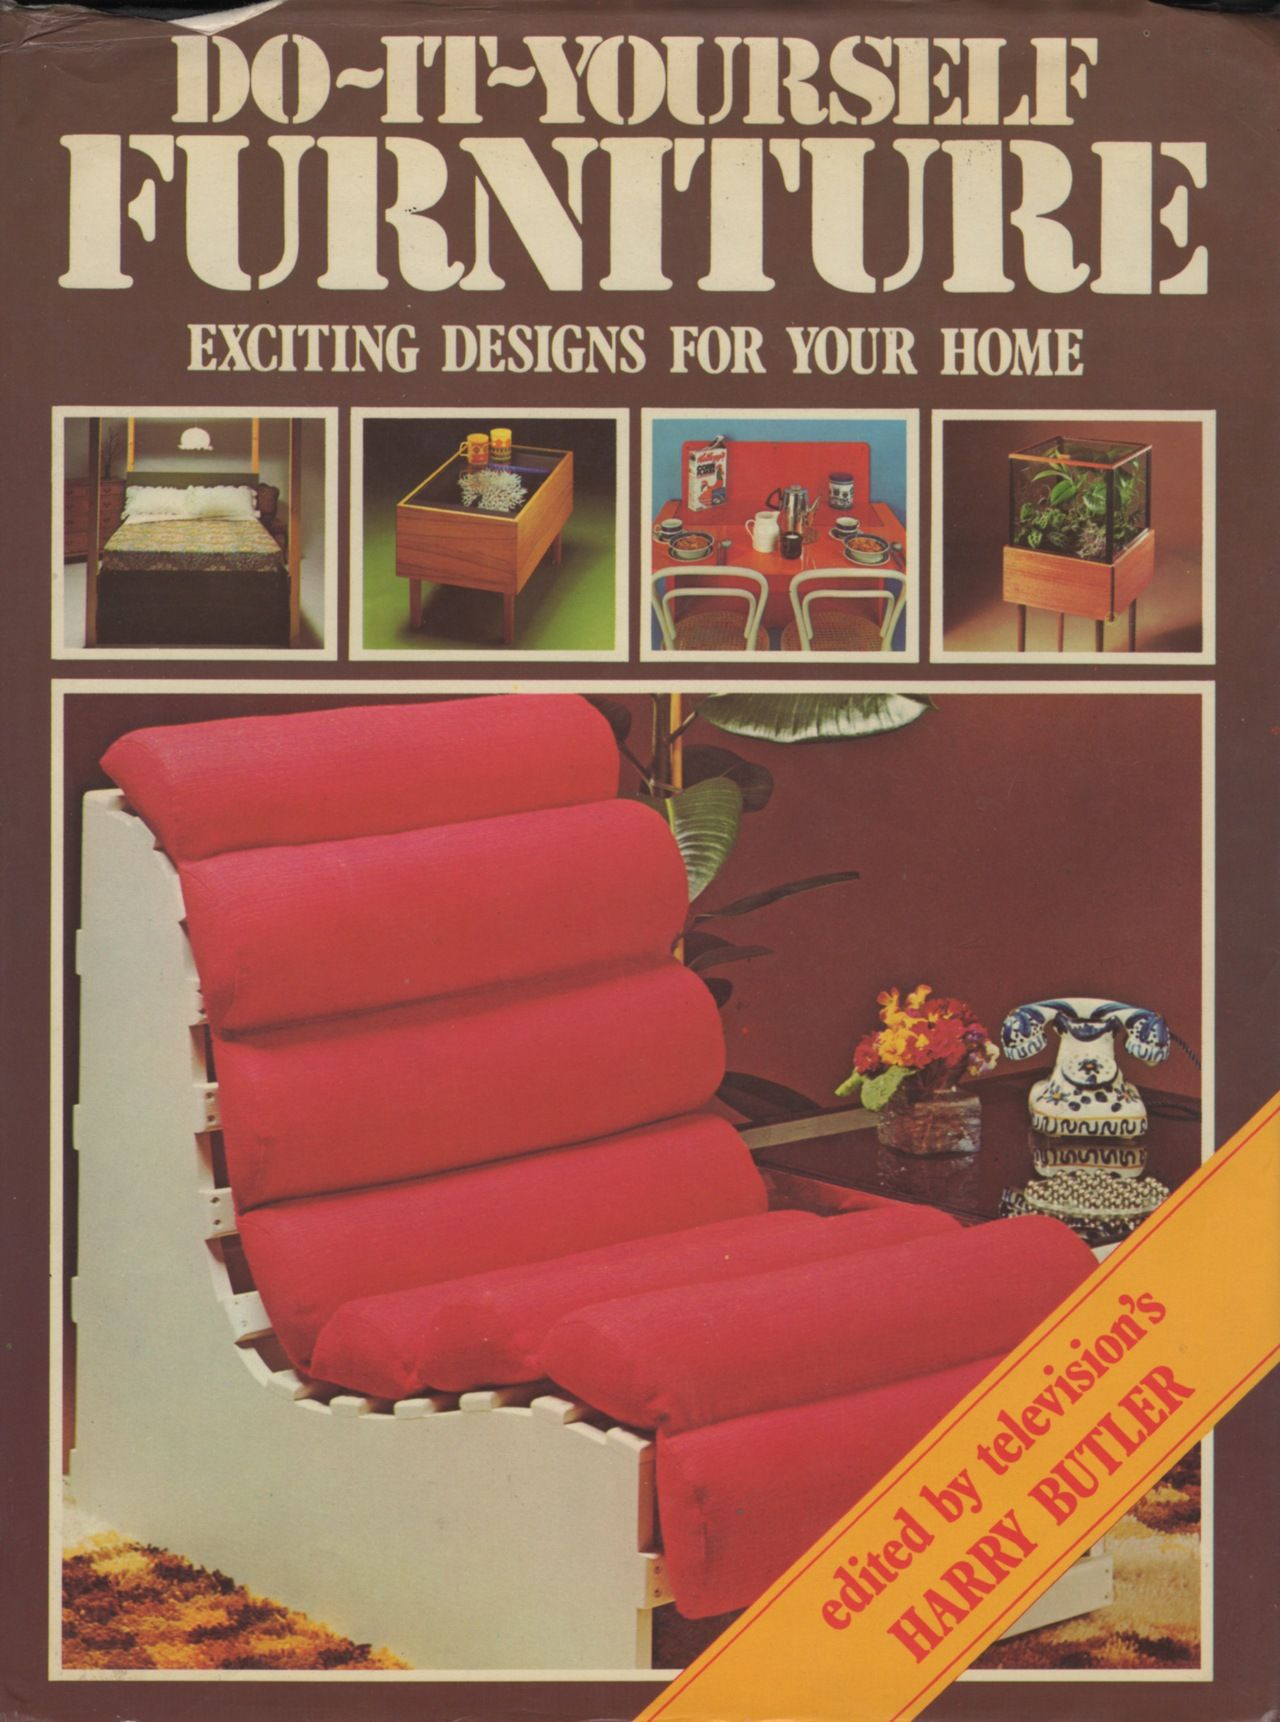 Do it yourself furniture by harry butler golden handsmarshall do it yourself furniture by harry butler golden handsmarshall cavendish 1975 solutioingenieria Images